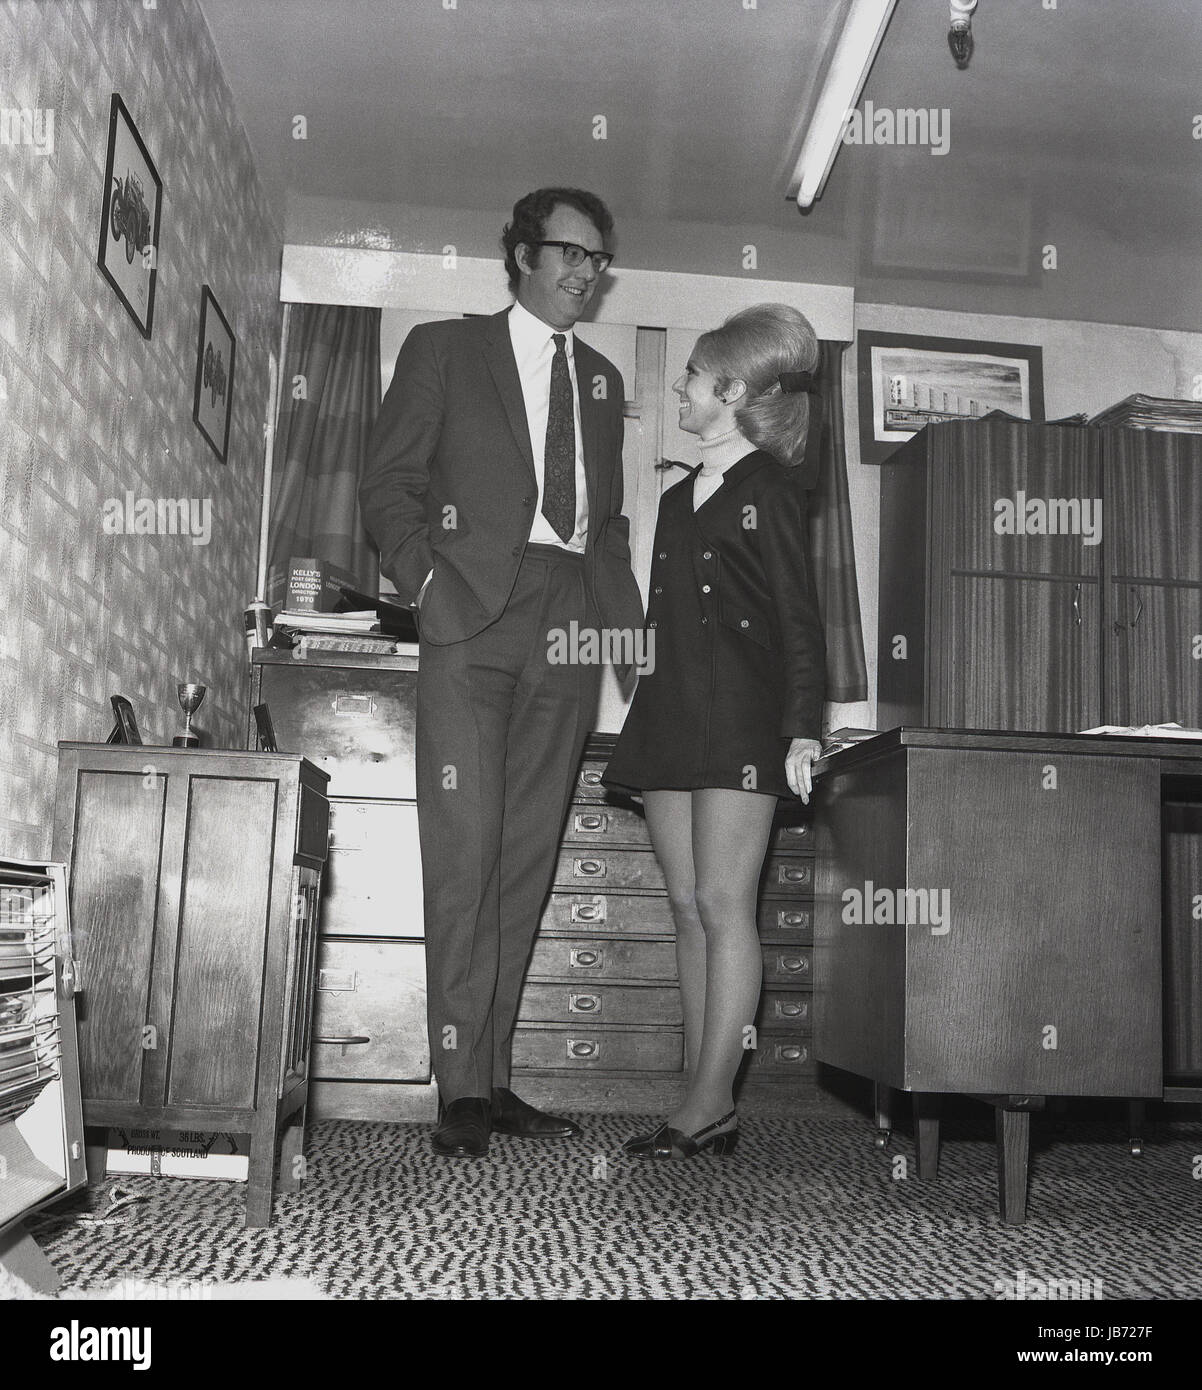 1970s historical a secretary wearing a miniskirt and